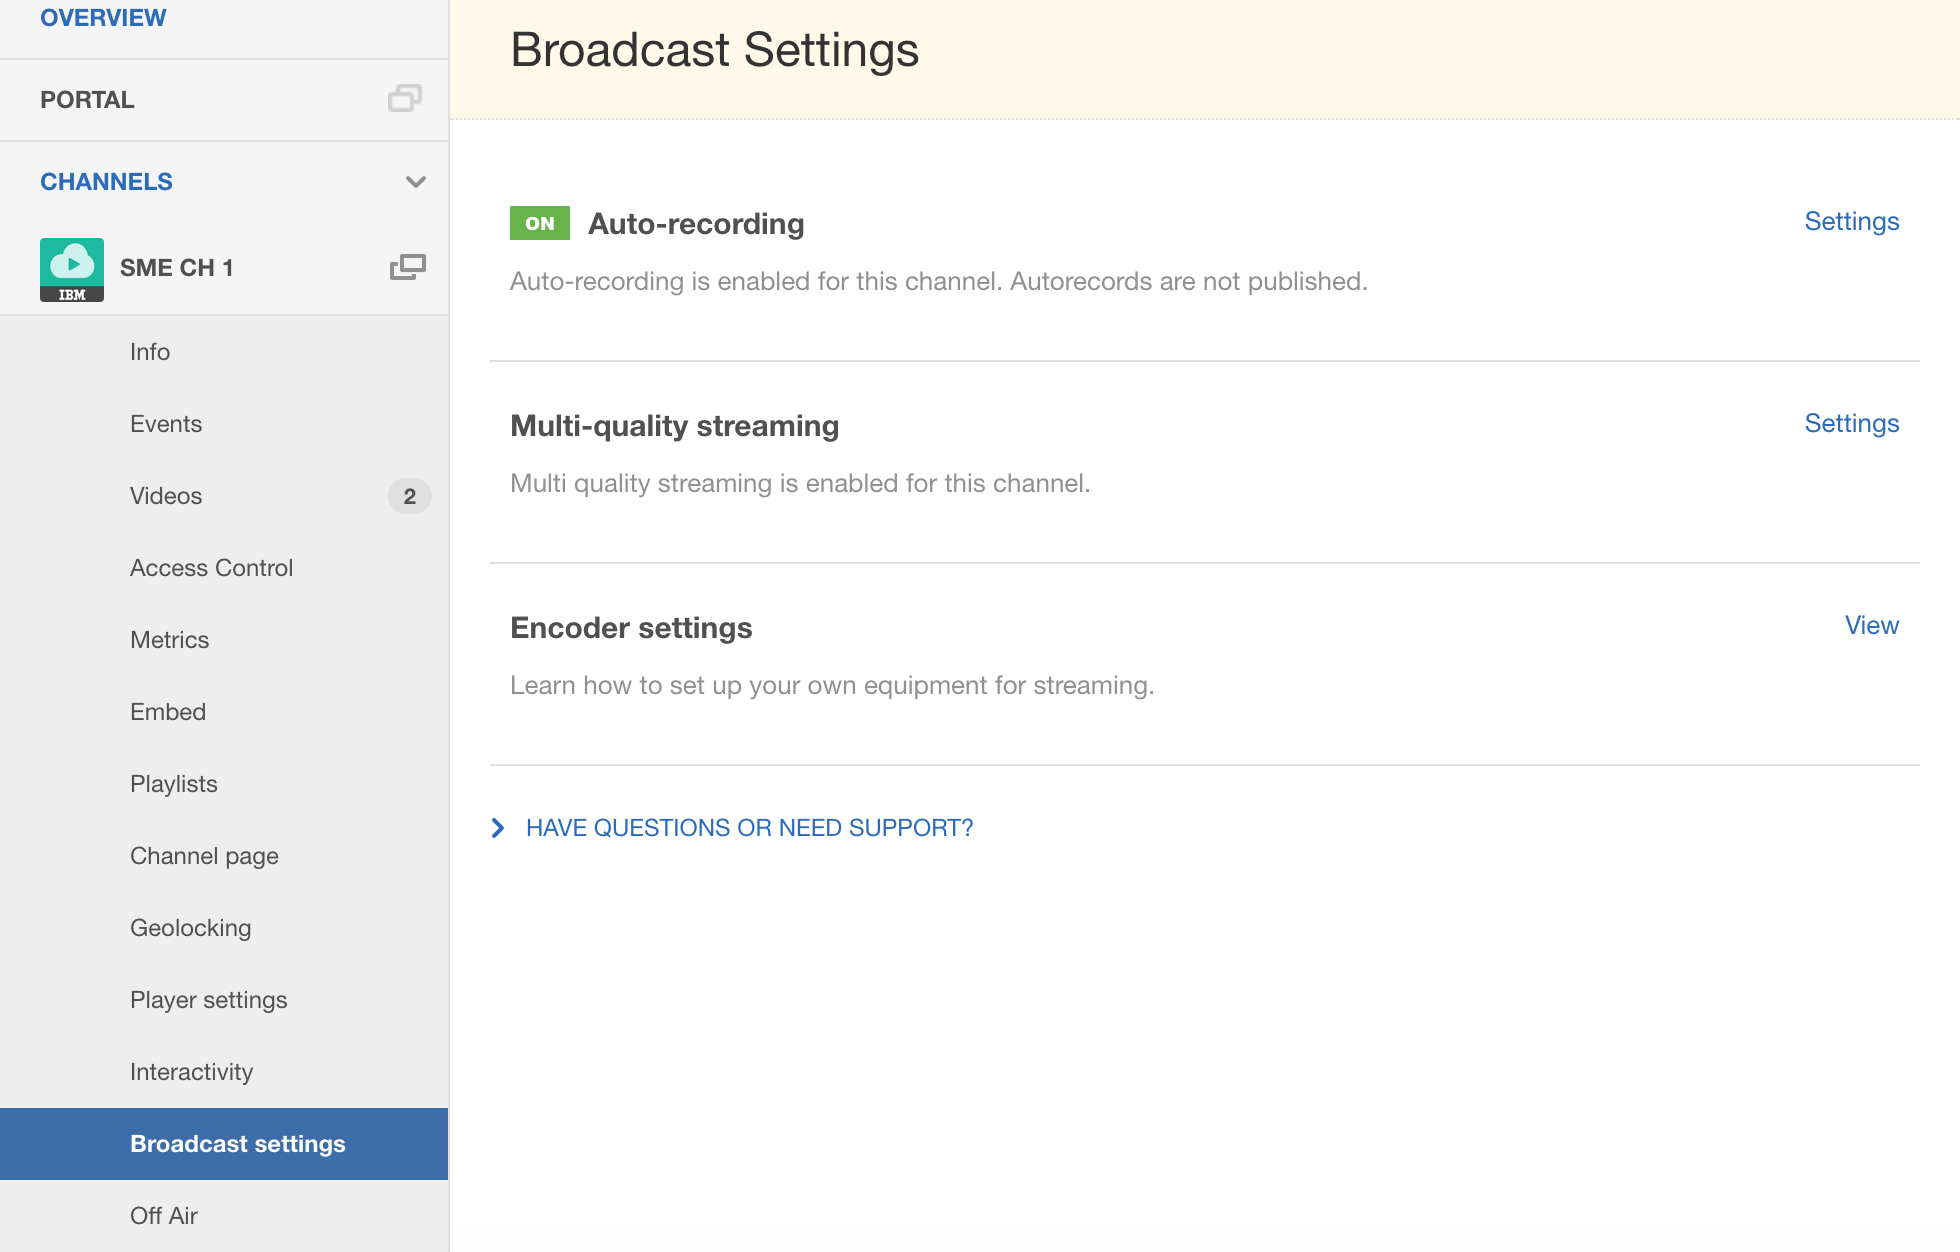 streaming manager for enterprise broadcast settings ibm cloud